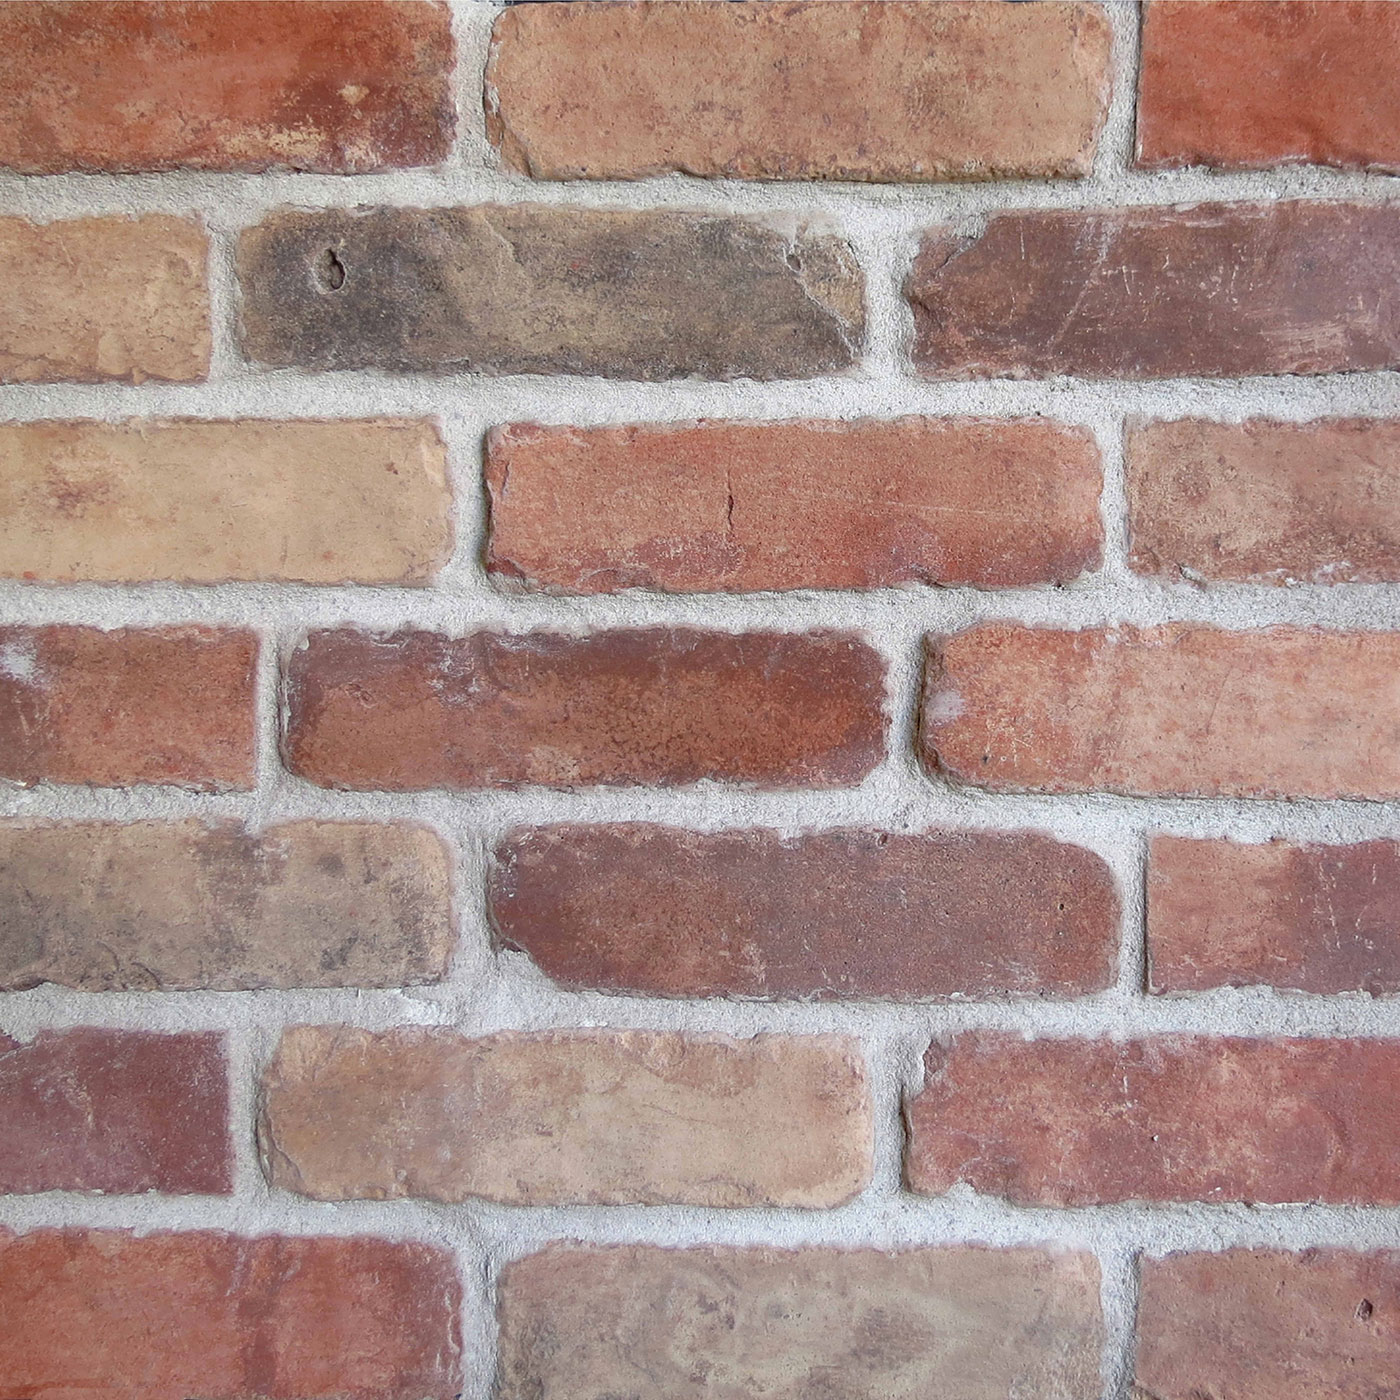 Peppermill Weathered Brick Stone Veneer from Environmental StoneWorks